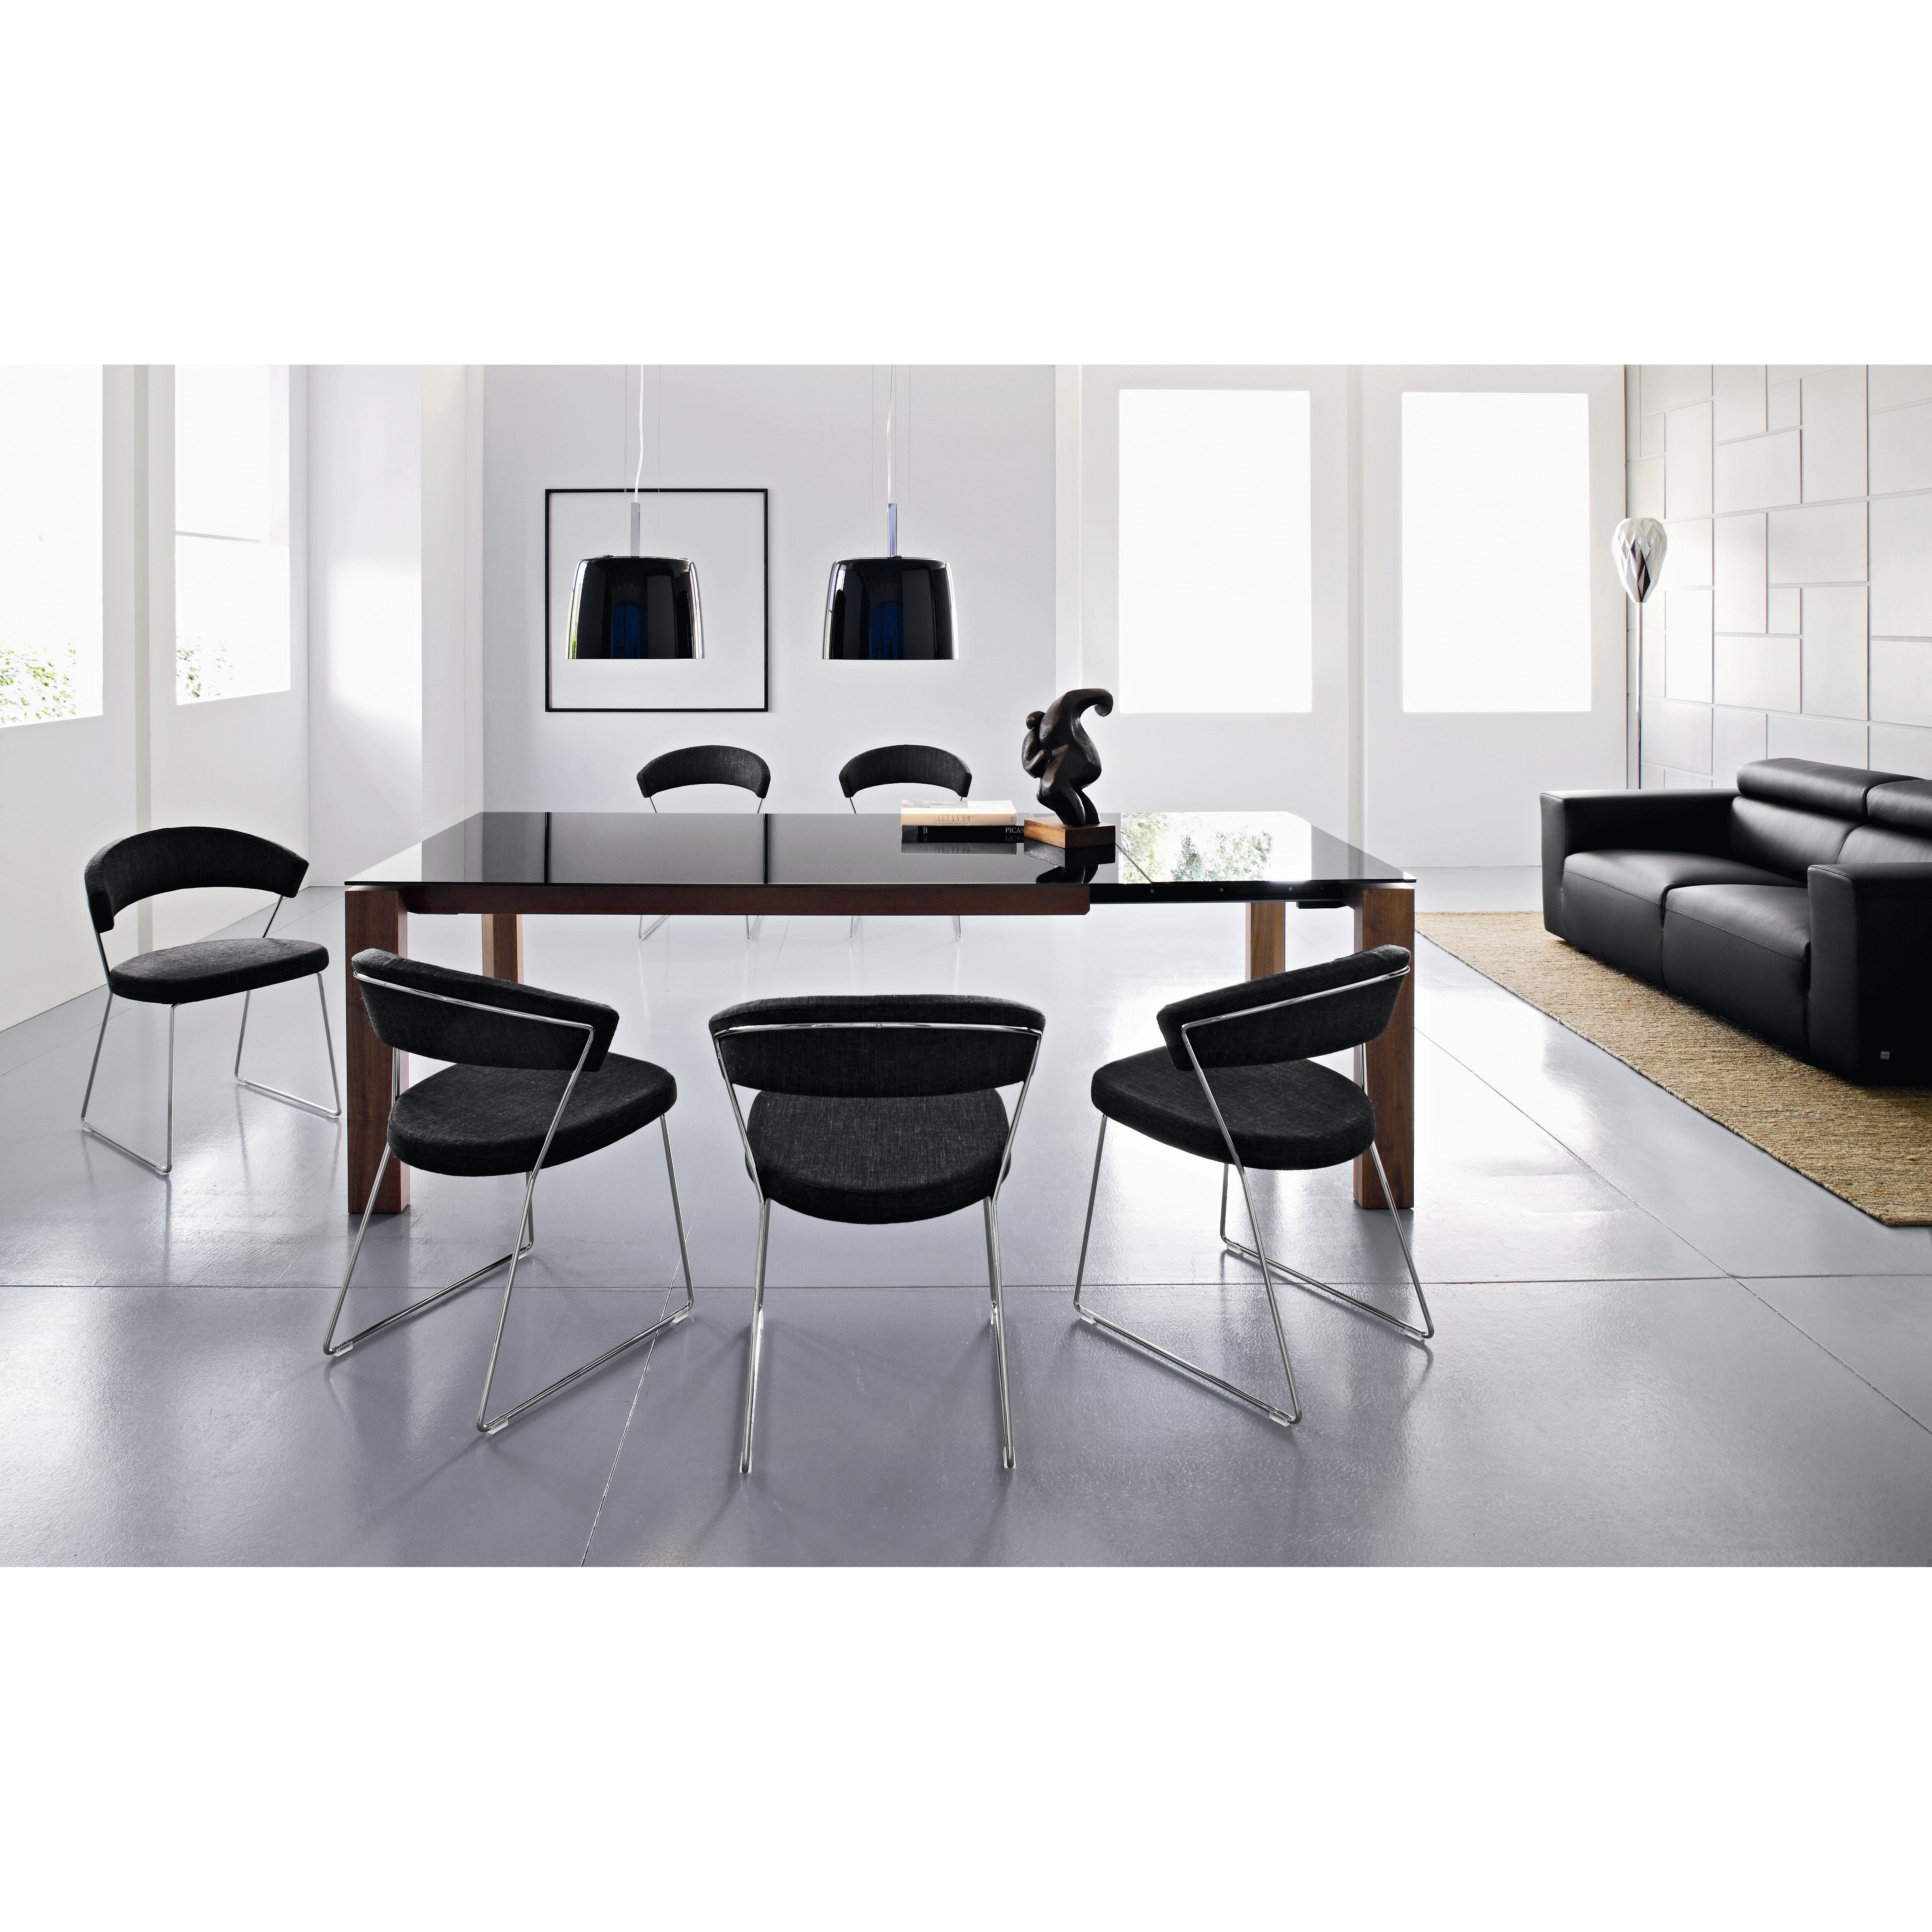 Chaises Calligaris Simple Calligaris Chaise Inspirant Chaises De